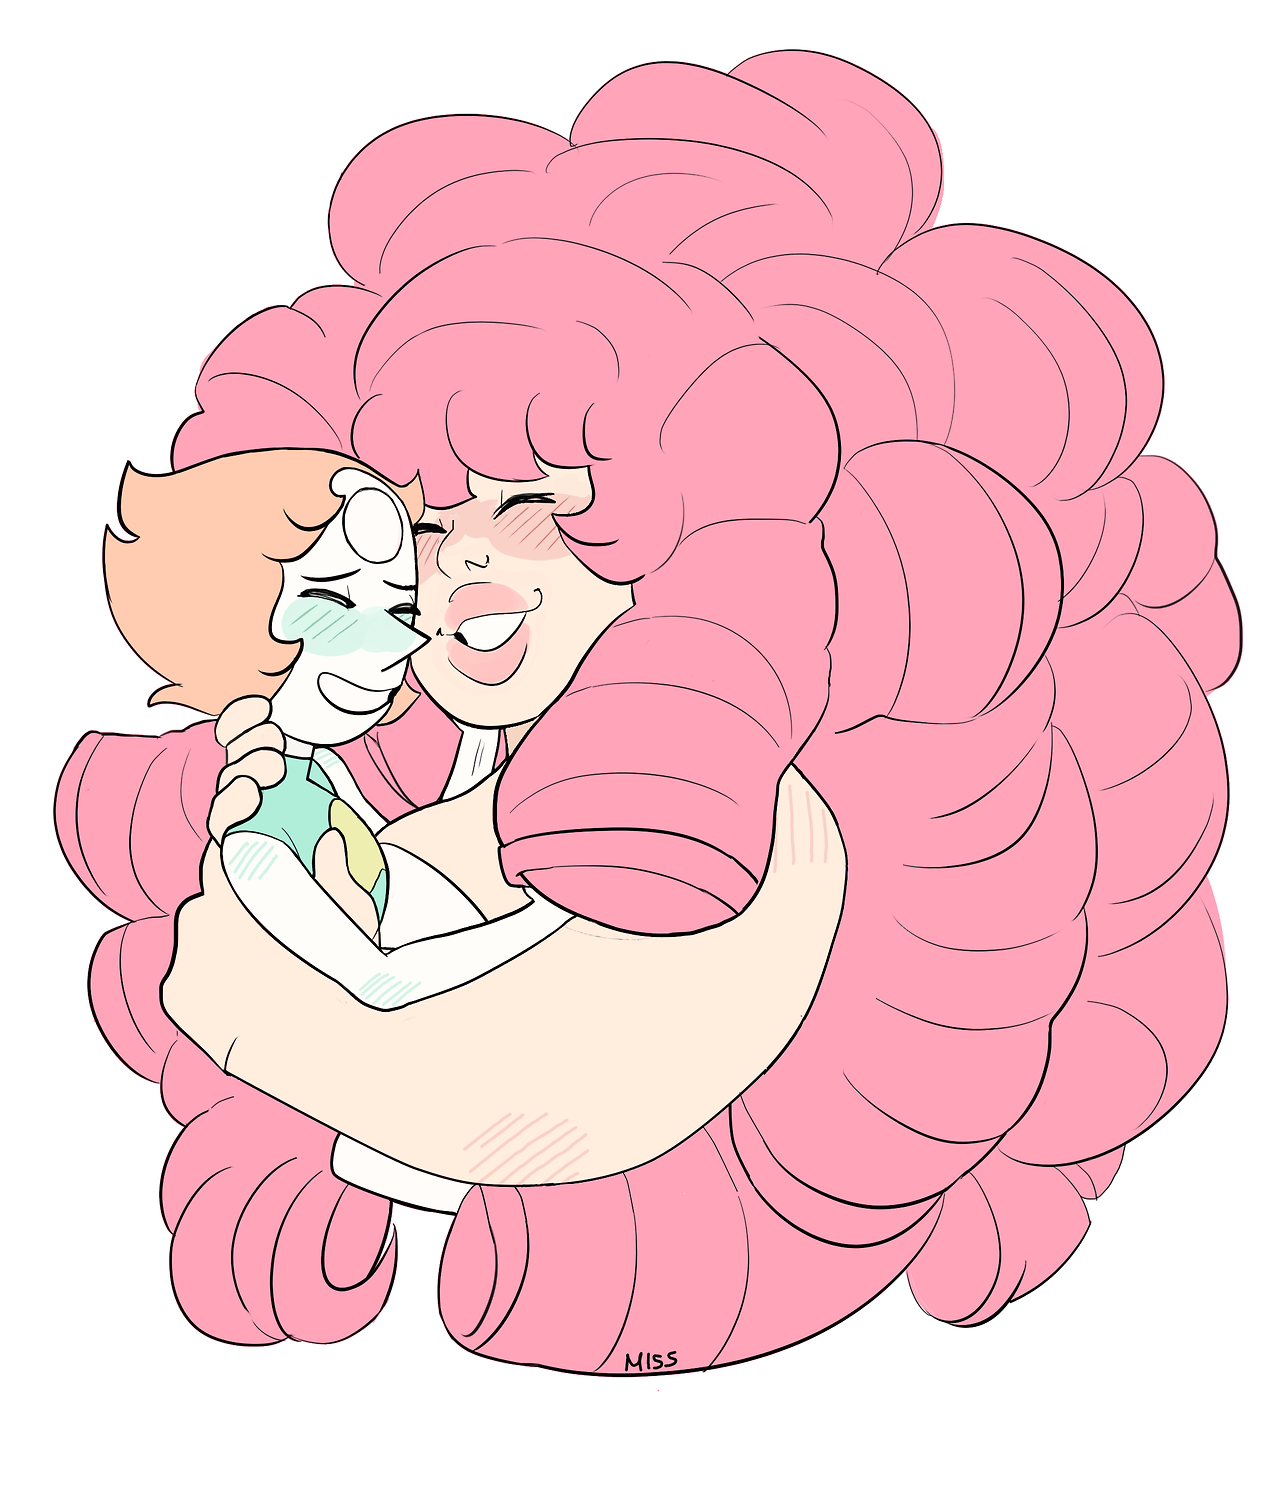 happy pearlroses, the best kind of pearlroses